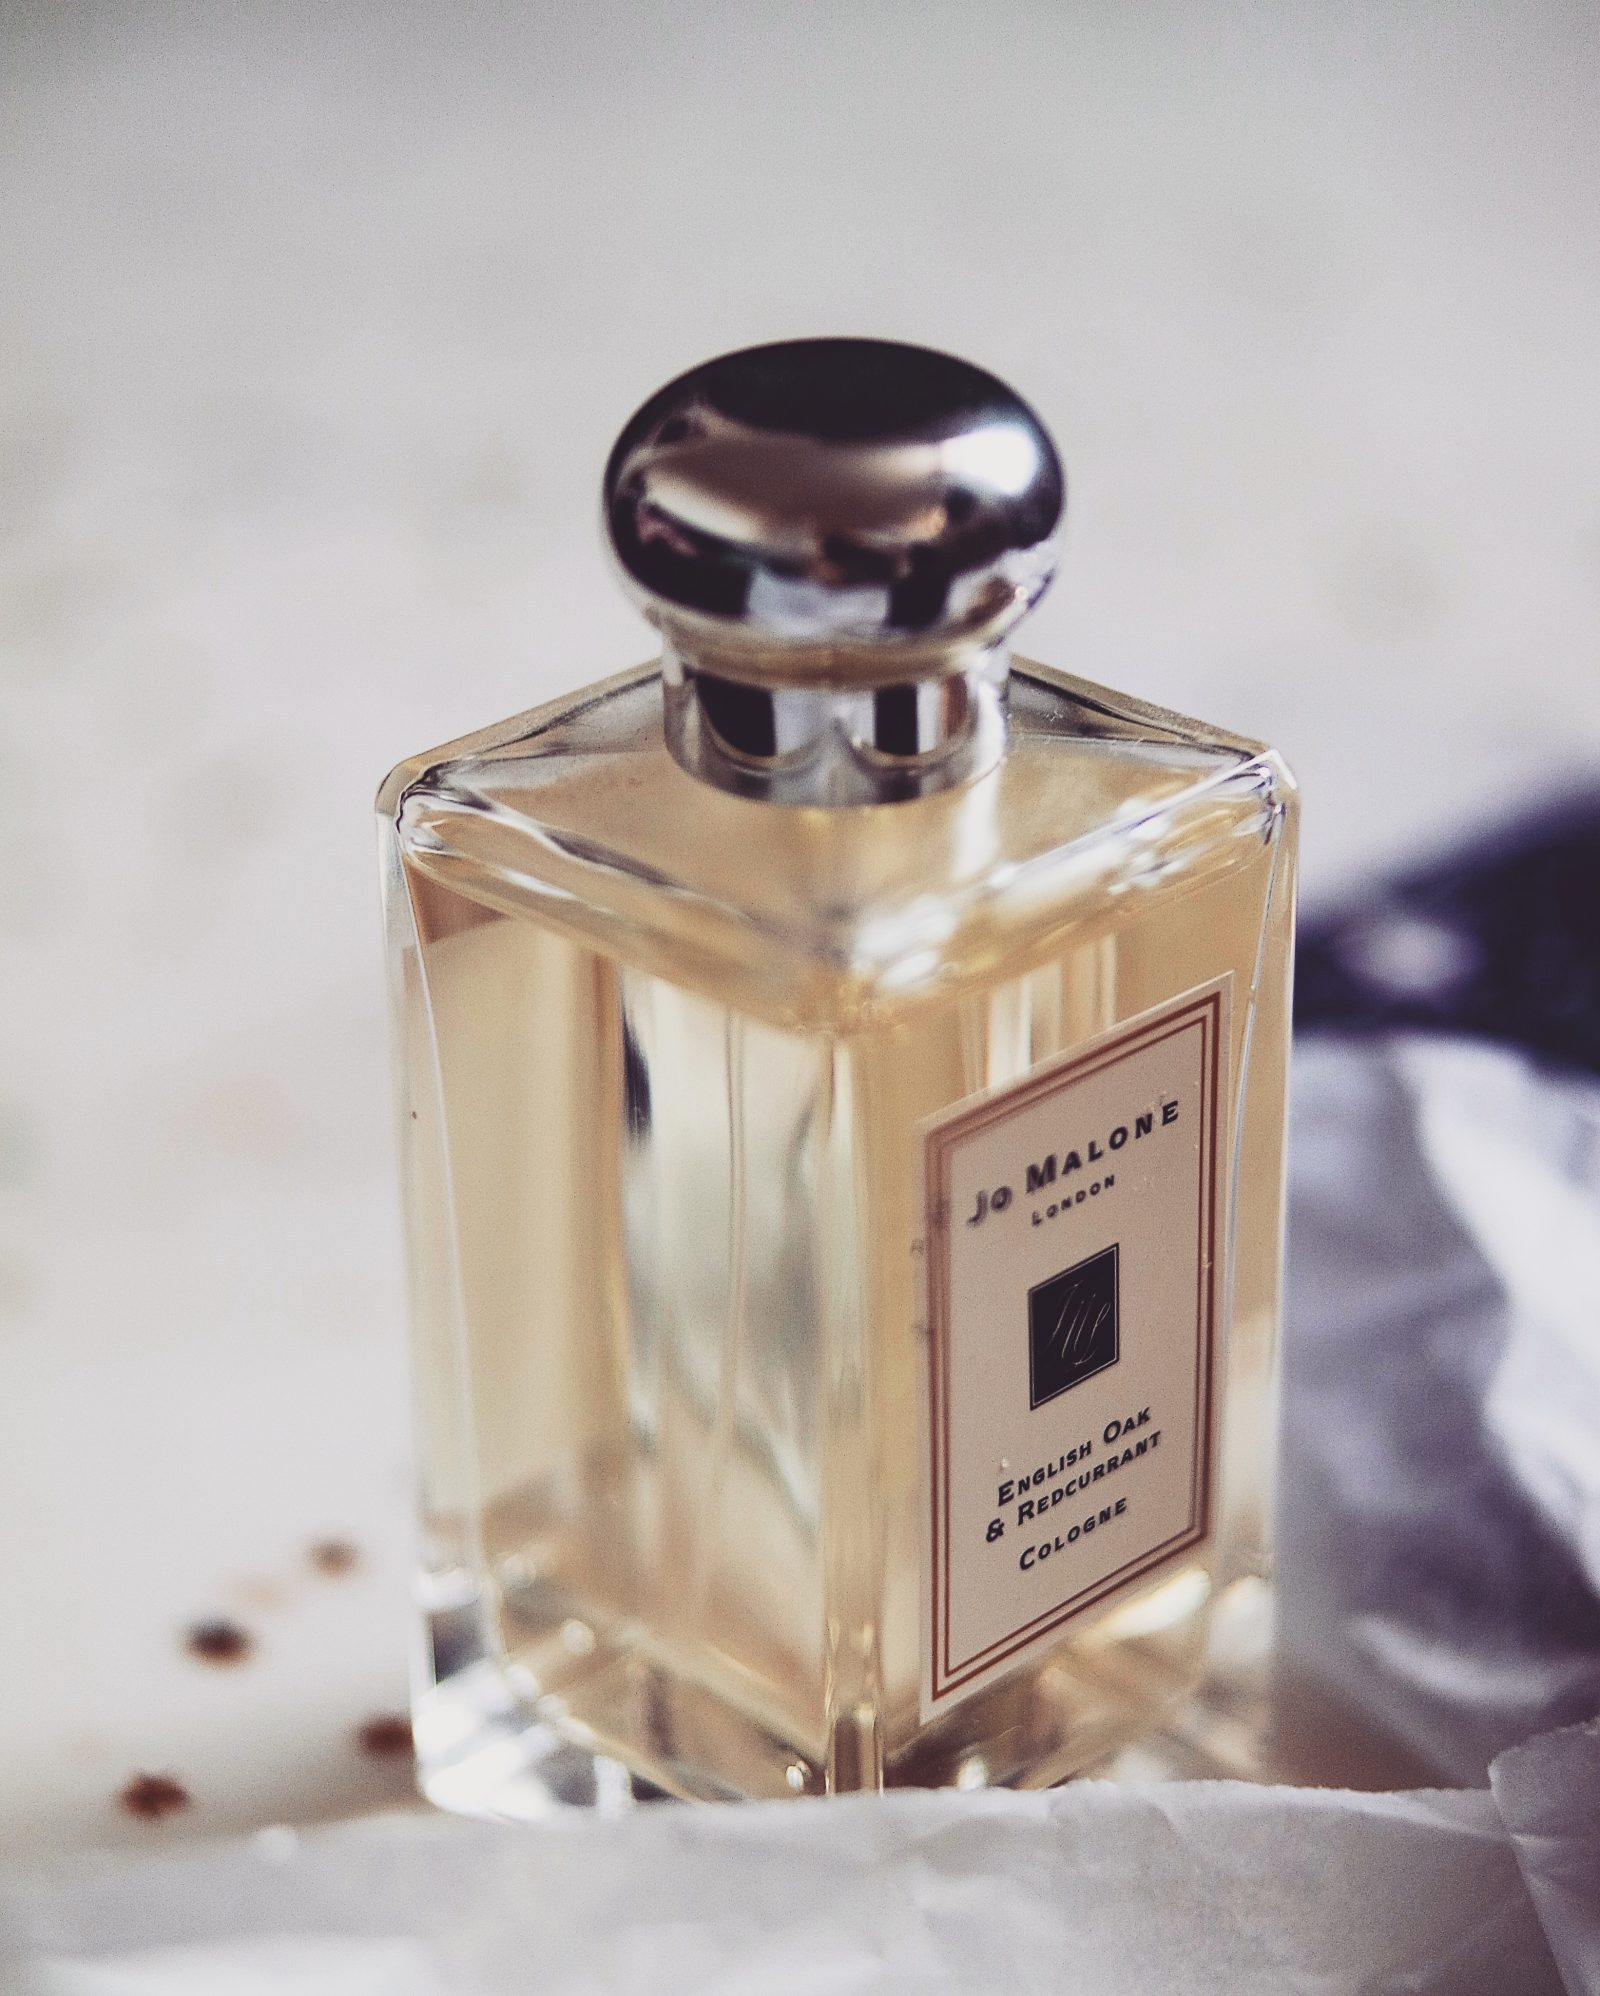 Gift guide for her - Jo Malone Perfume